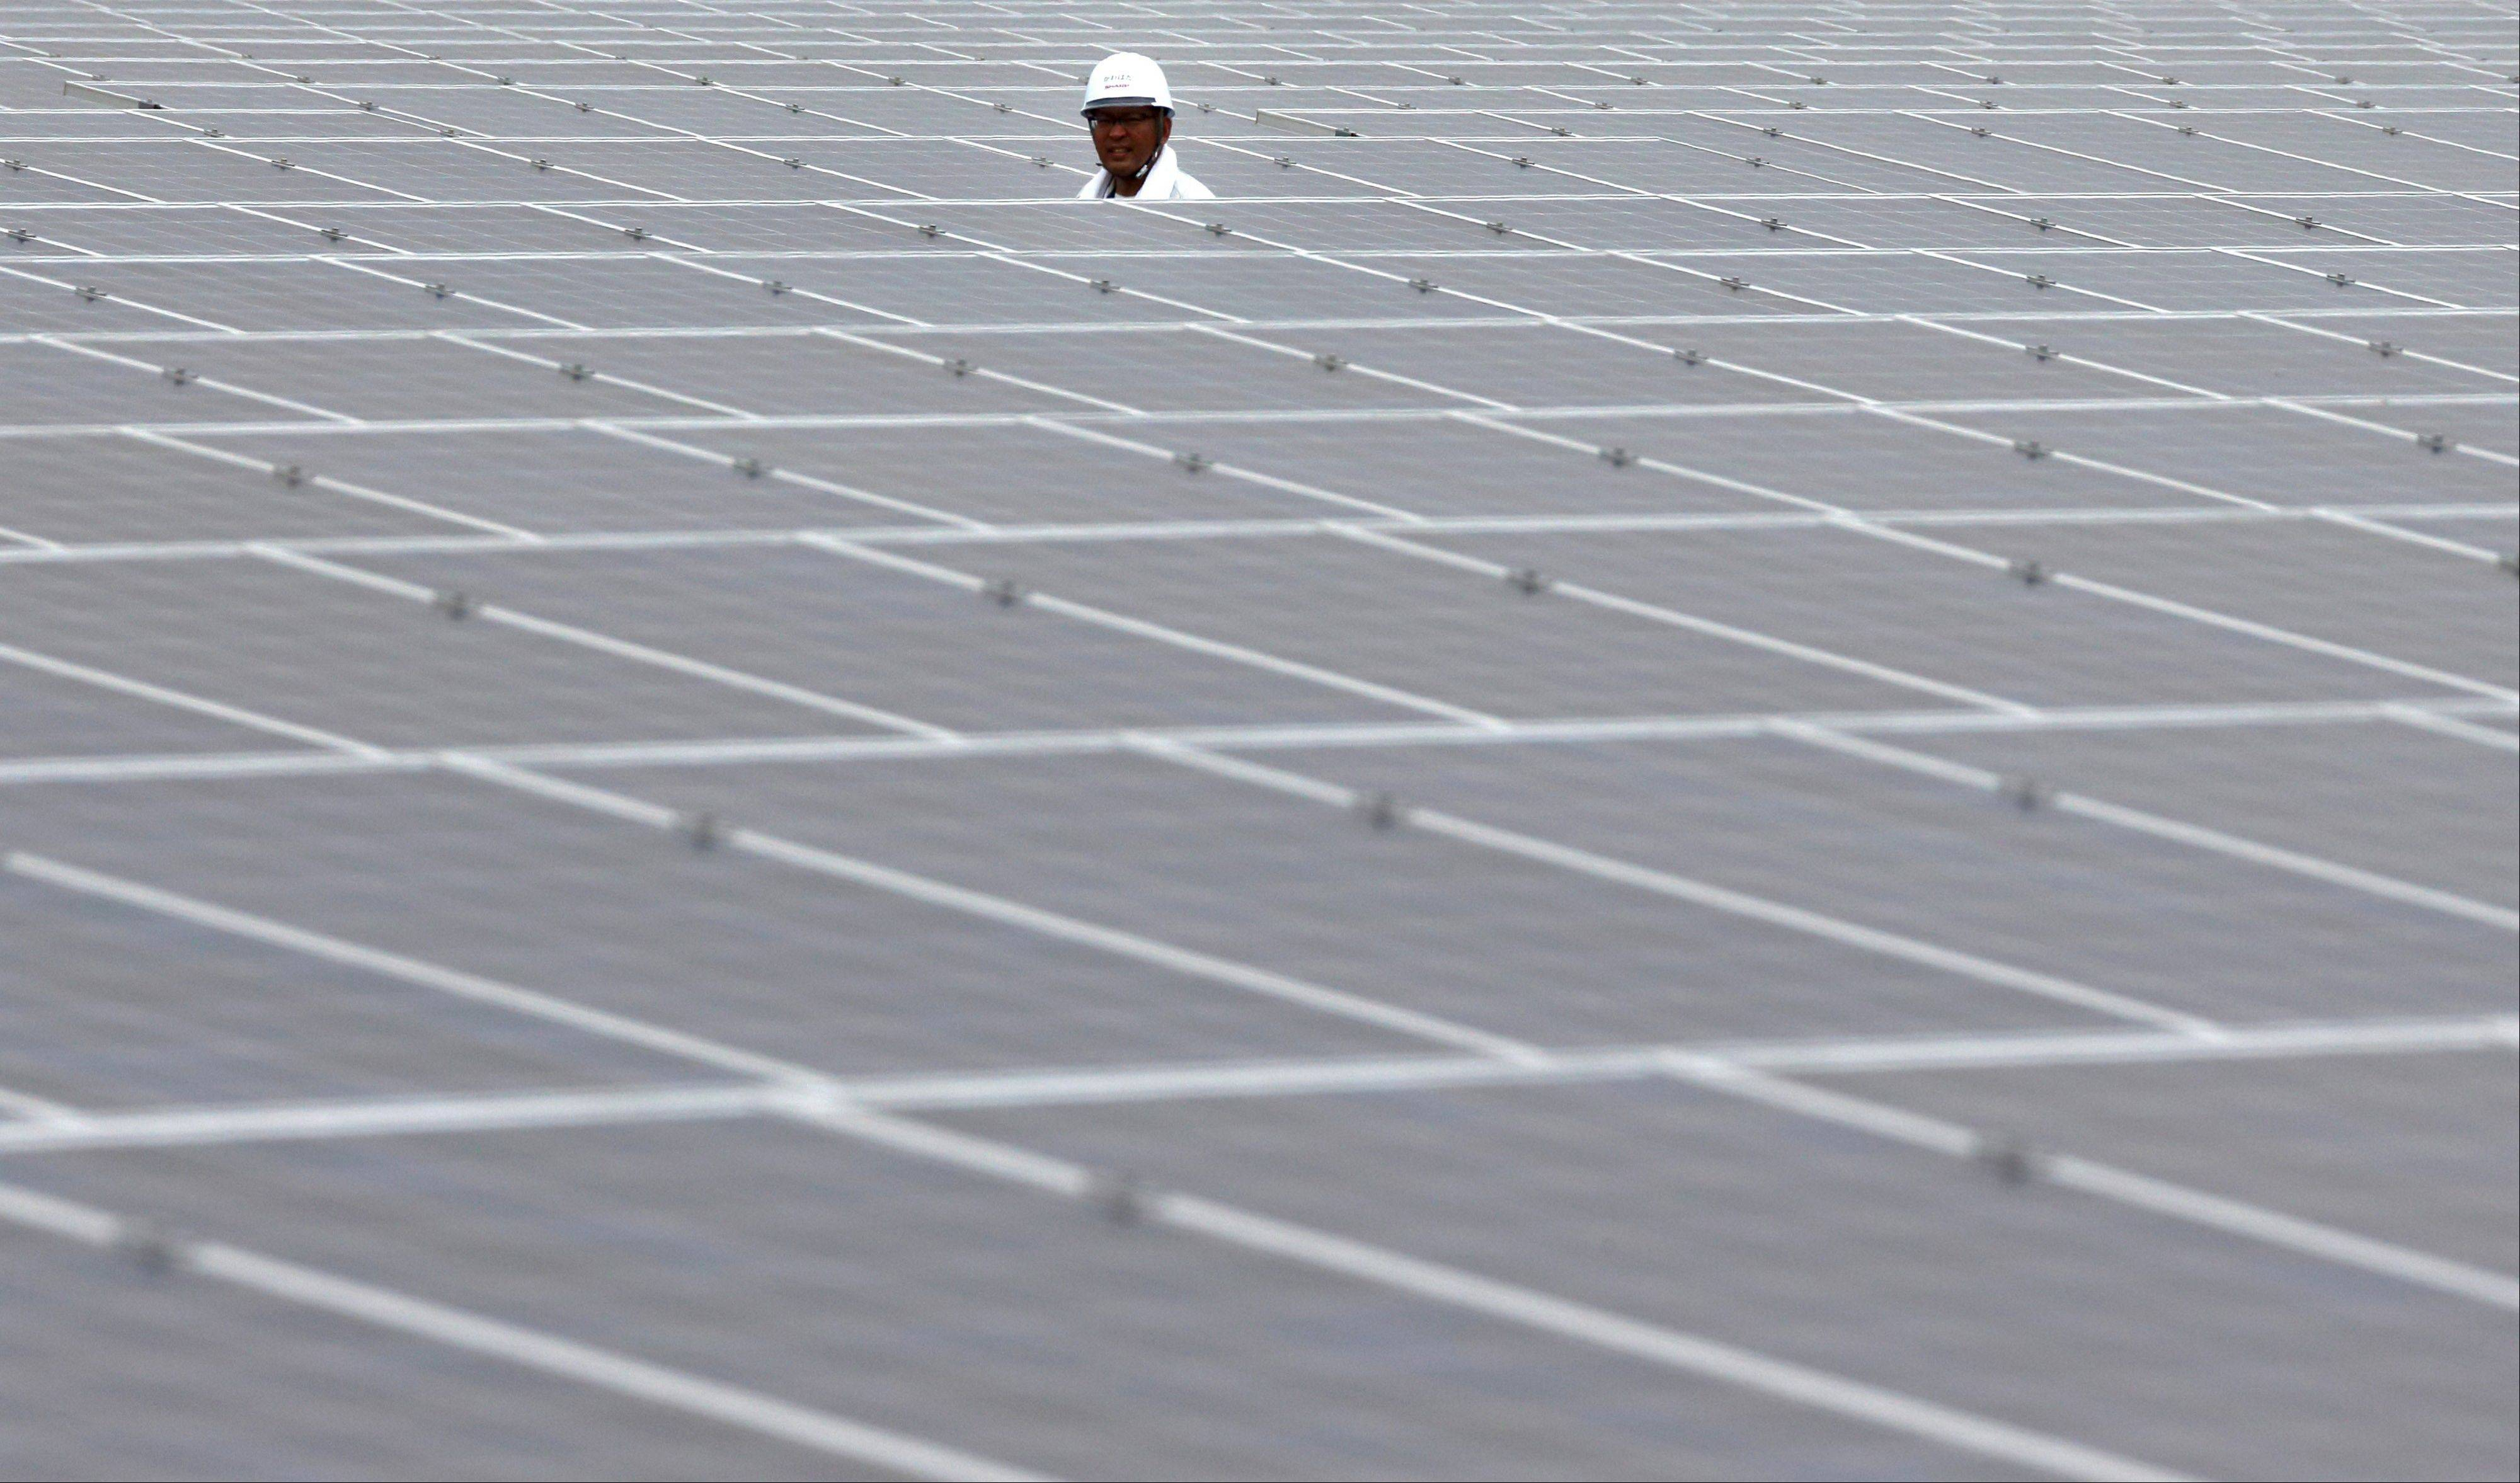 A worker walks Tuesday through solar panels, manufactured by Sharp Corp., at the SoftBank Yaita Solar Park operated by SB Energy Corp. in Yaita City, Japan.